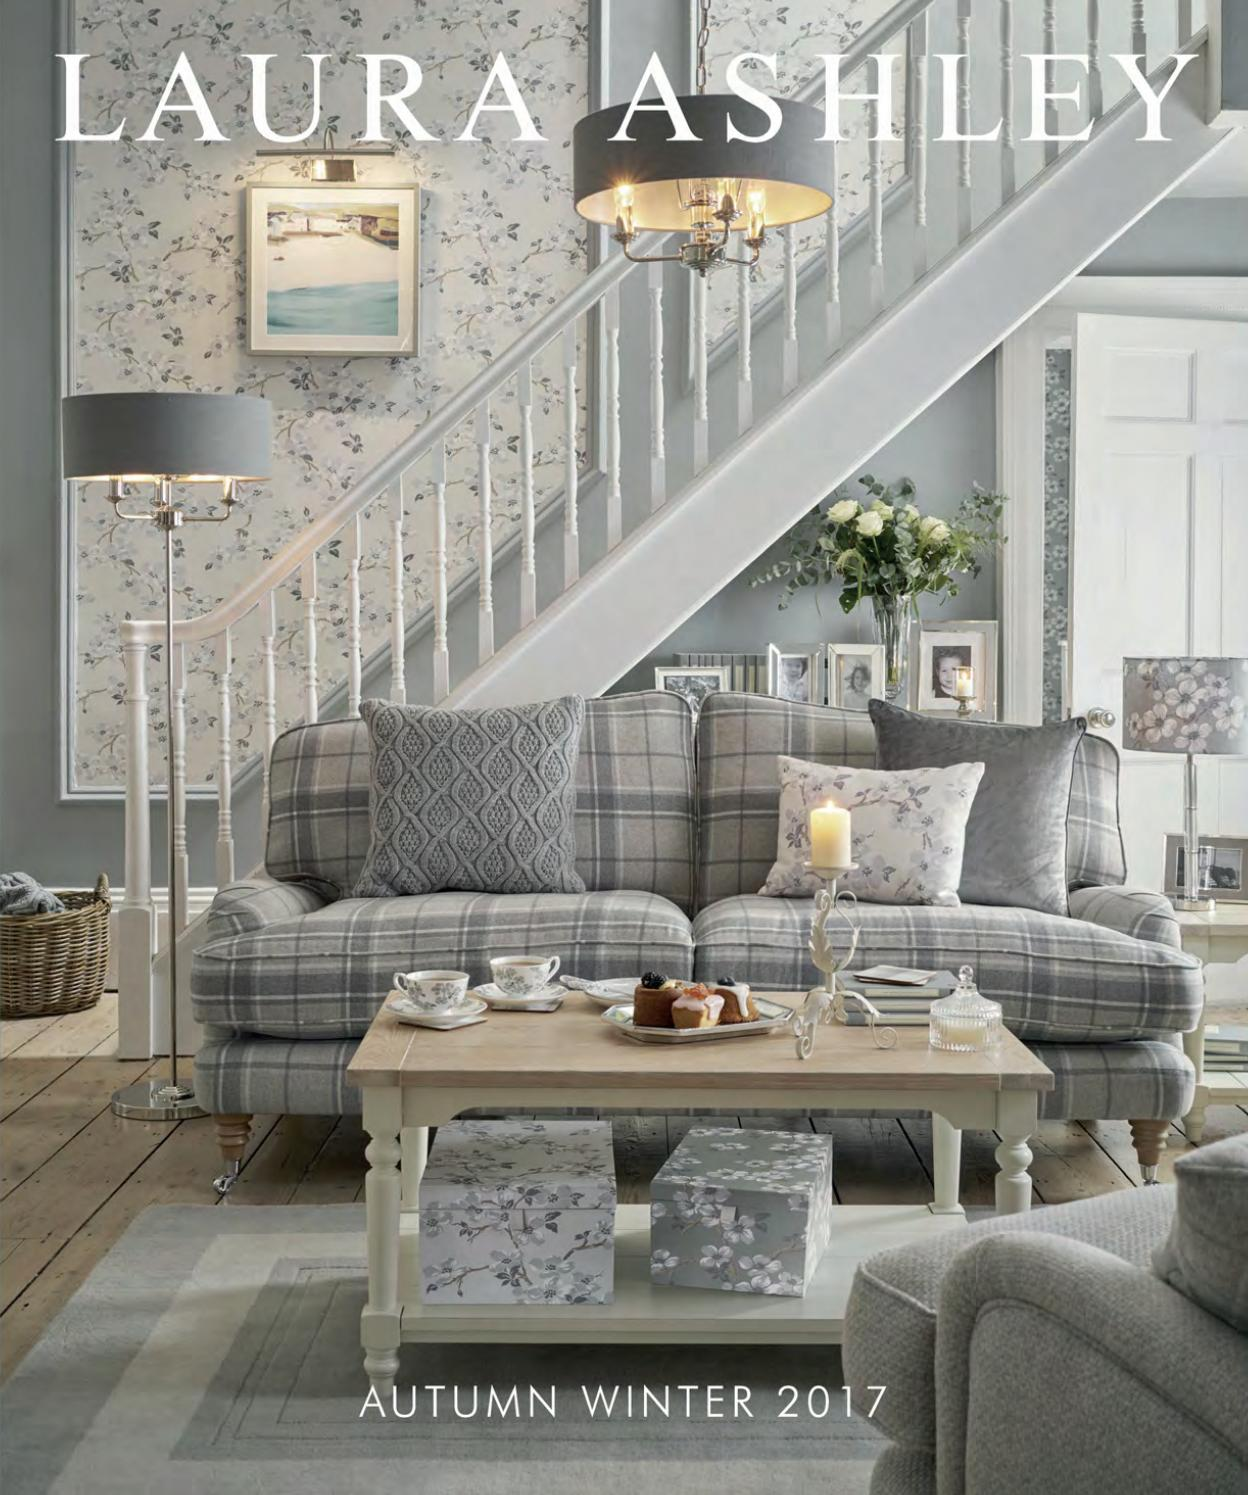 LAURA ASHLEY Home AW 2017 New Catalogue by Stanislav